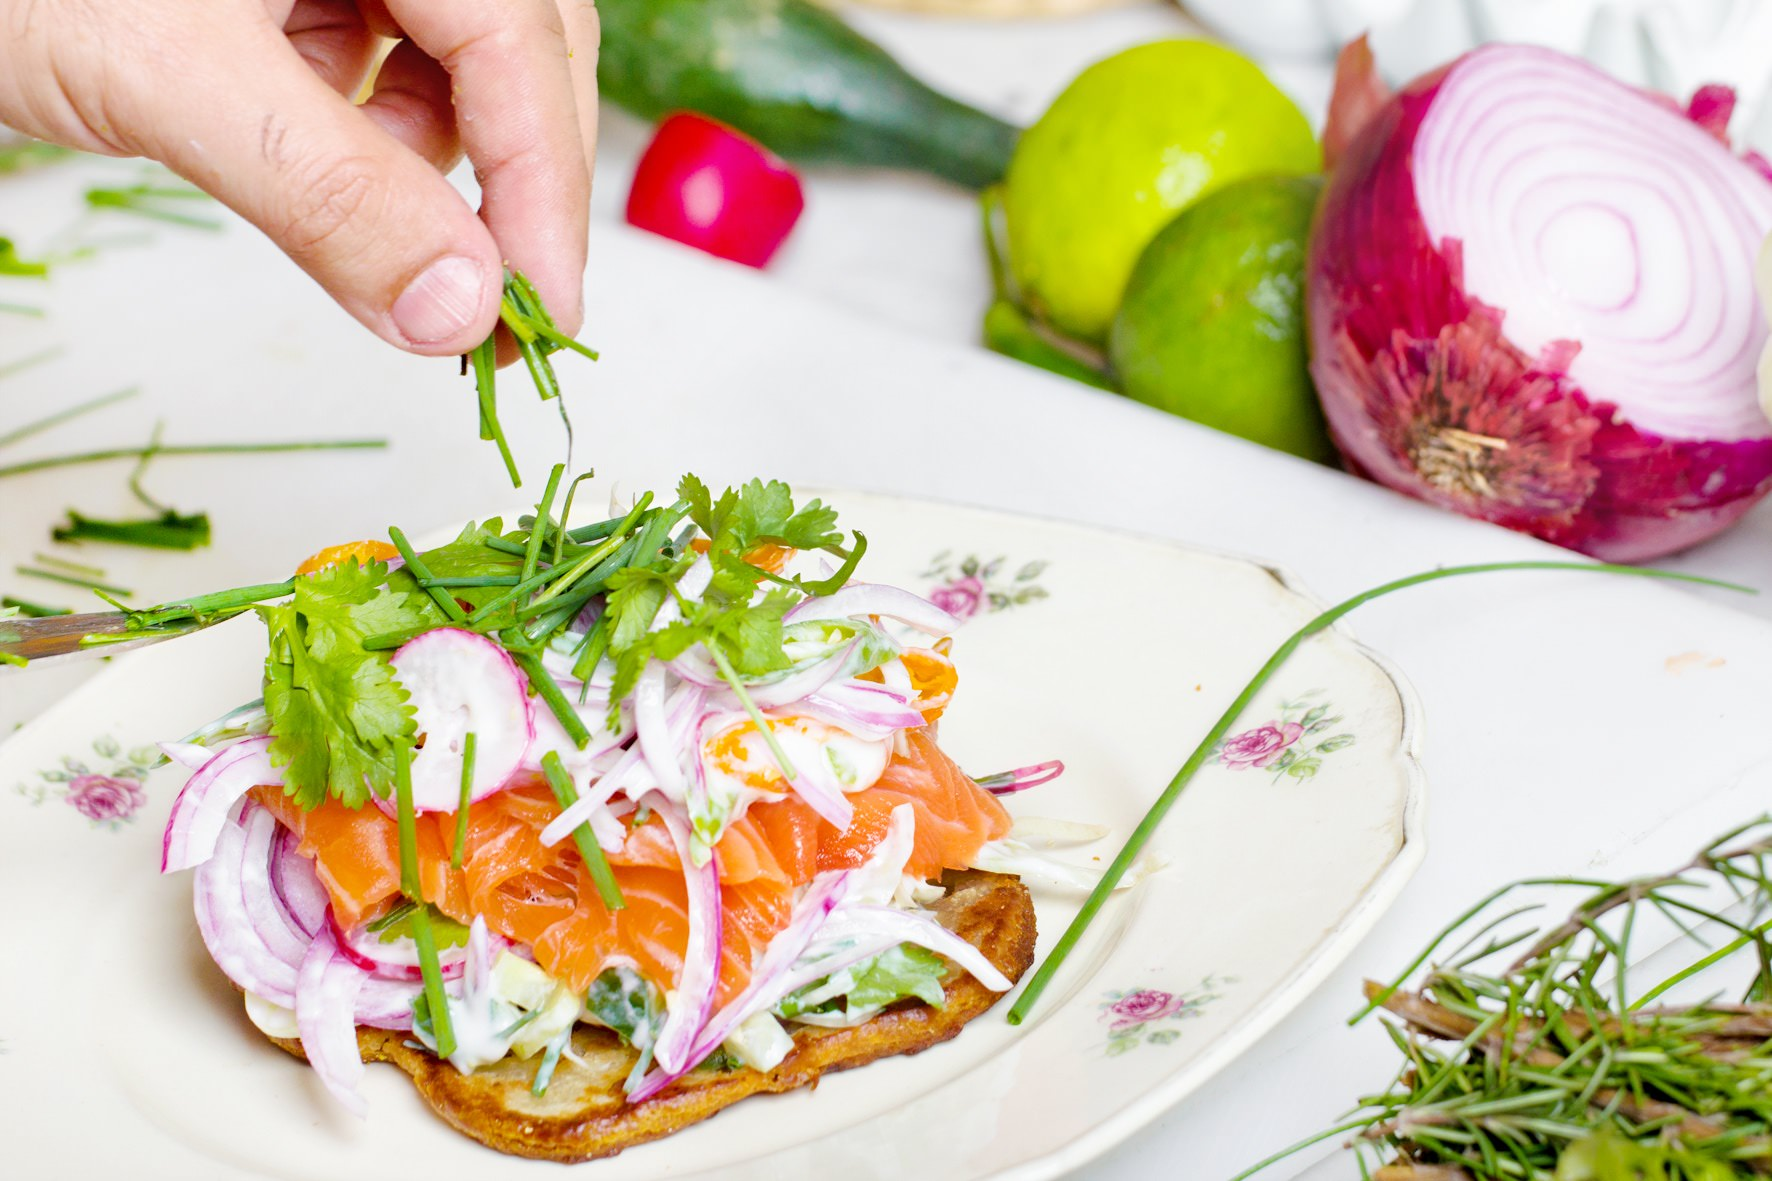 How to make your breakfast healthier in 4 easy steps